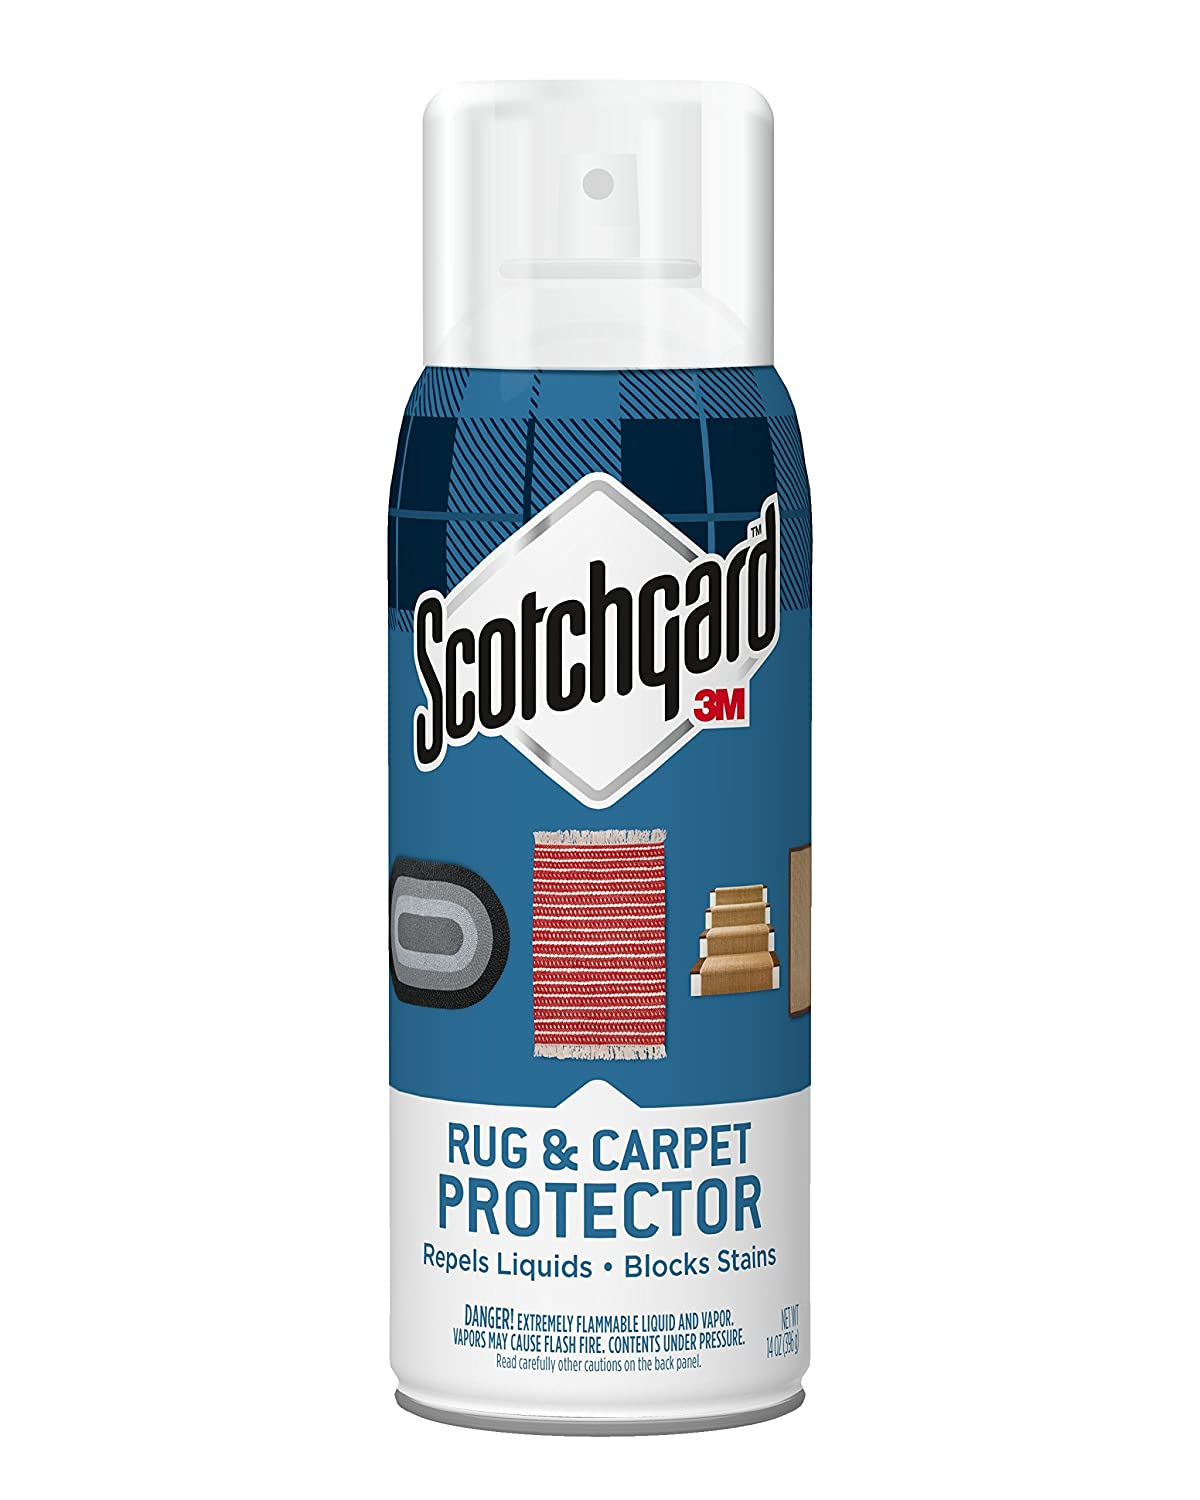 Scotchgard Rug & Carpet Protector, 1 Can, 14-Ounce